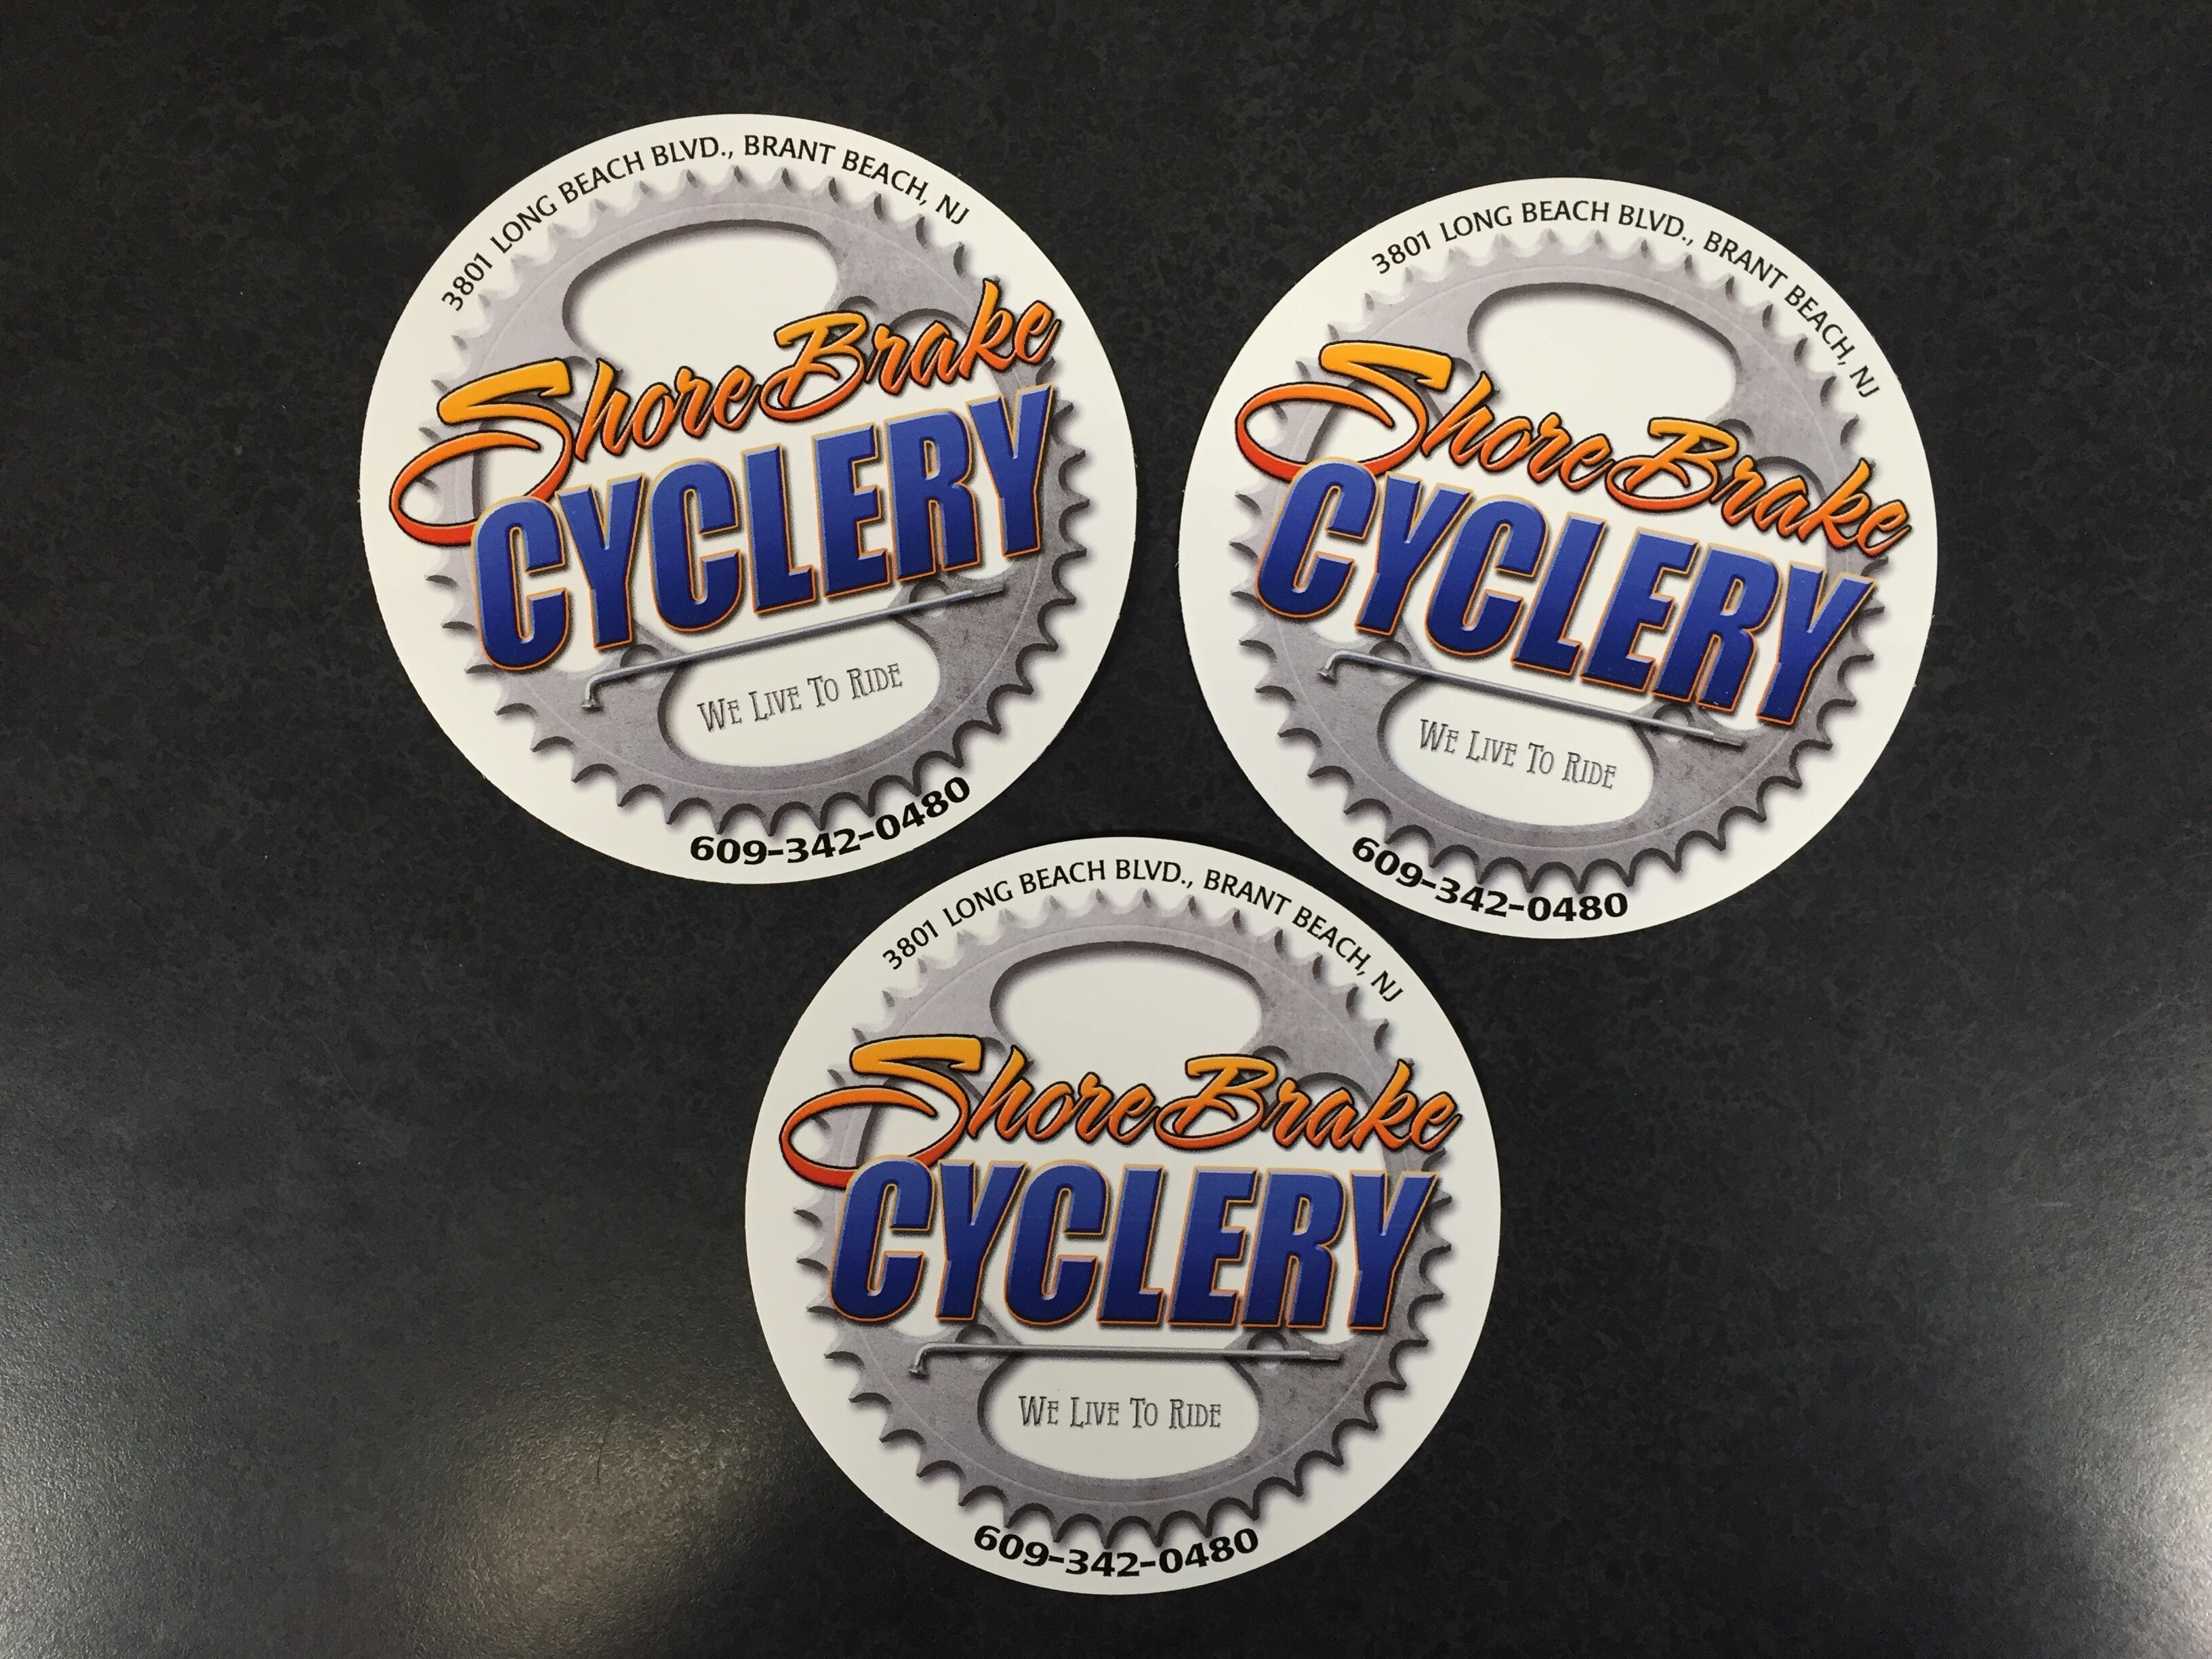 Shore Brake Cyclery